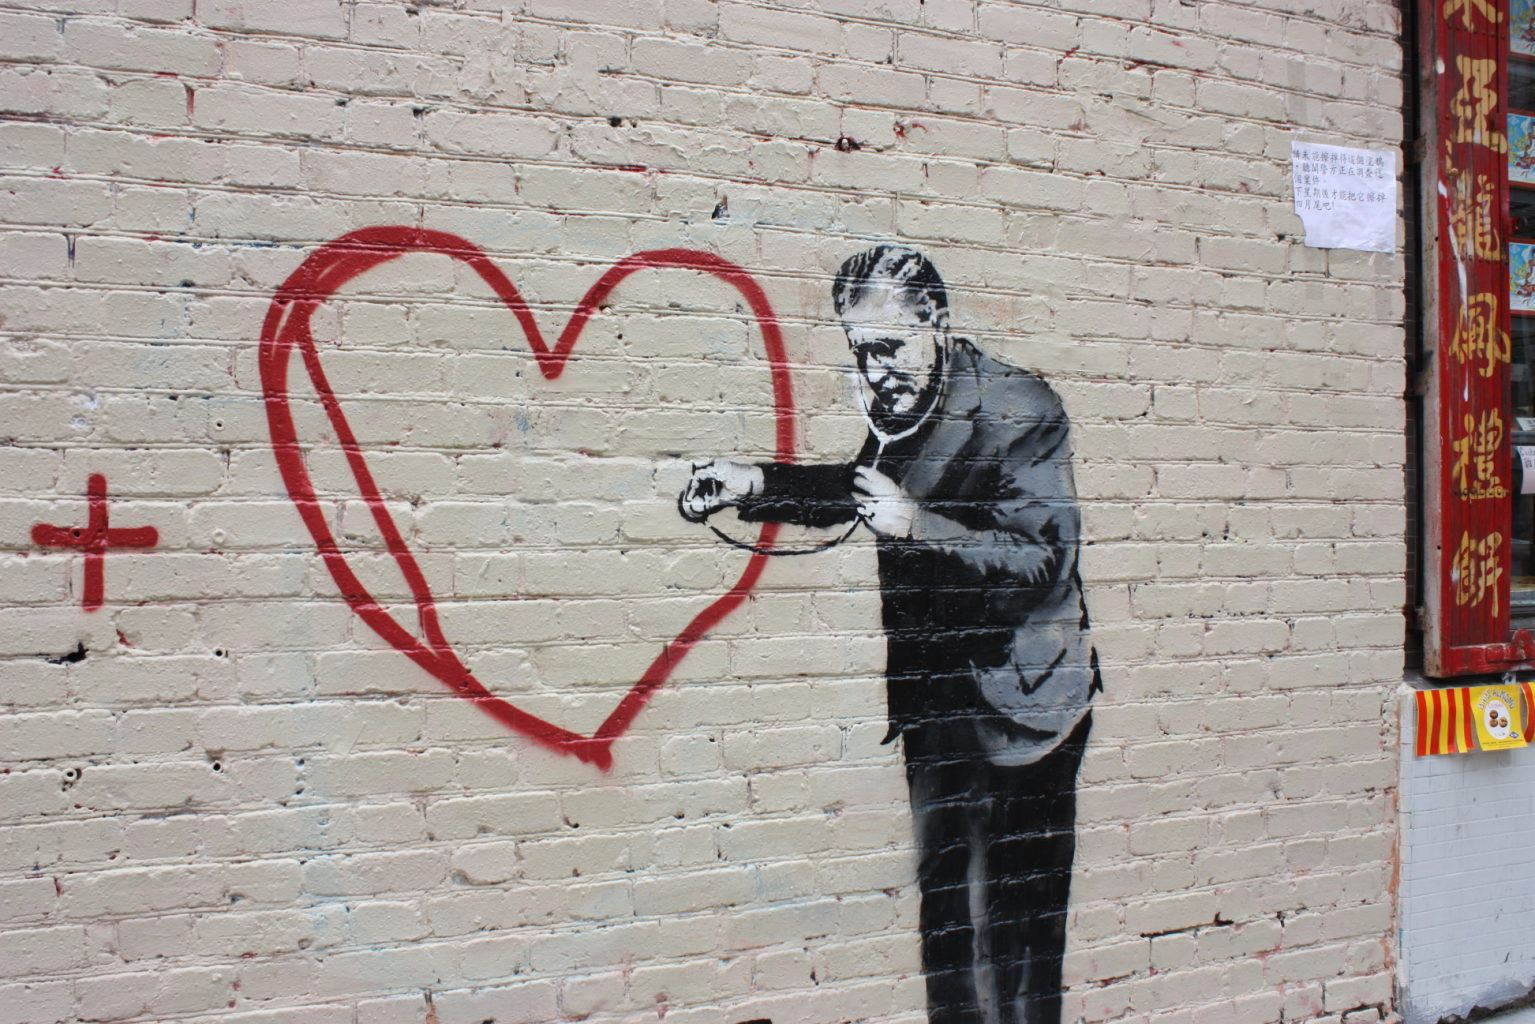 15 Life Lessons From Banksy Street Art That Will Leave You Lost For Words